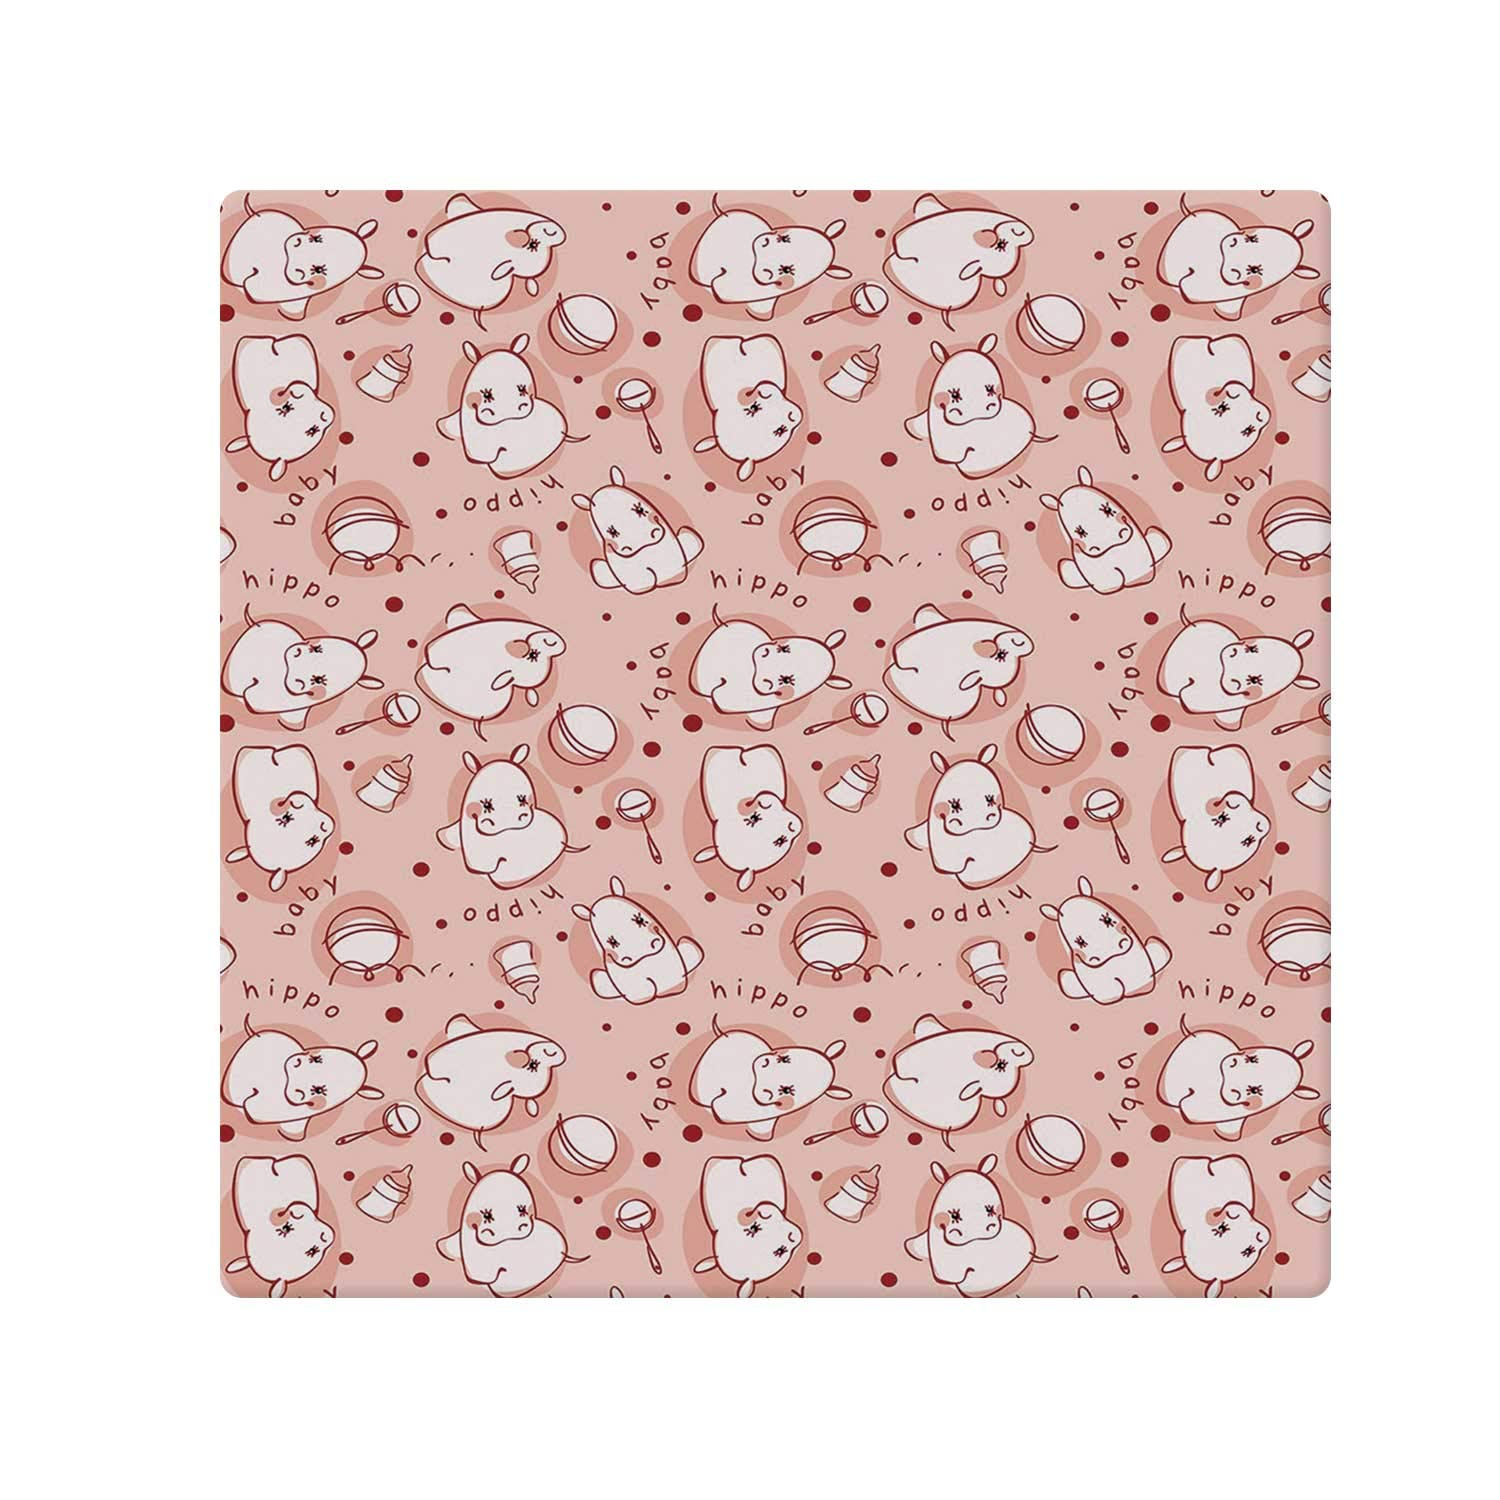 C COABALLA Kids Decor Comfortable Doormat,Cute Baby Hippo Pattern Lovely Wild Animal Girls Boys Playroom Concept for Home Office,70.8'' W x 70.8'' L by C COABALLA